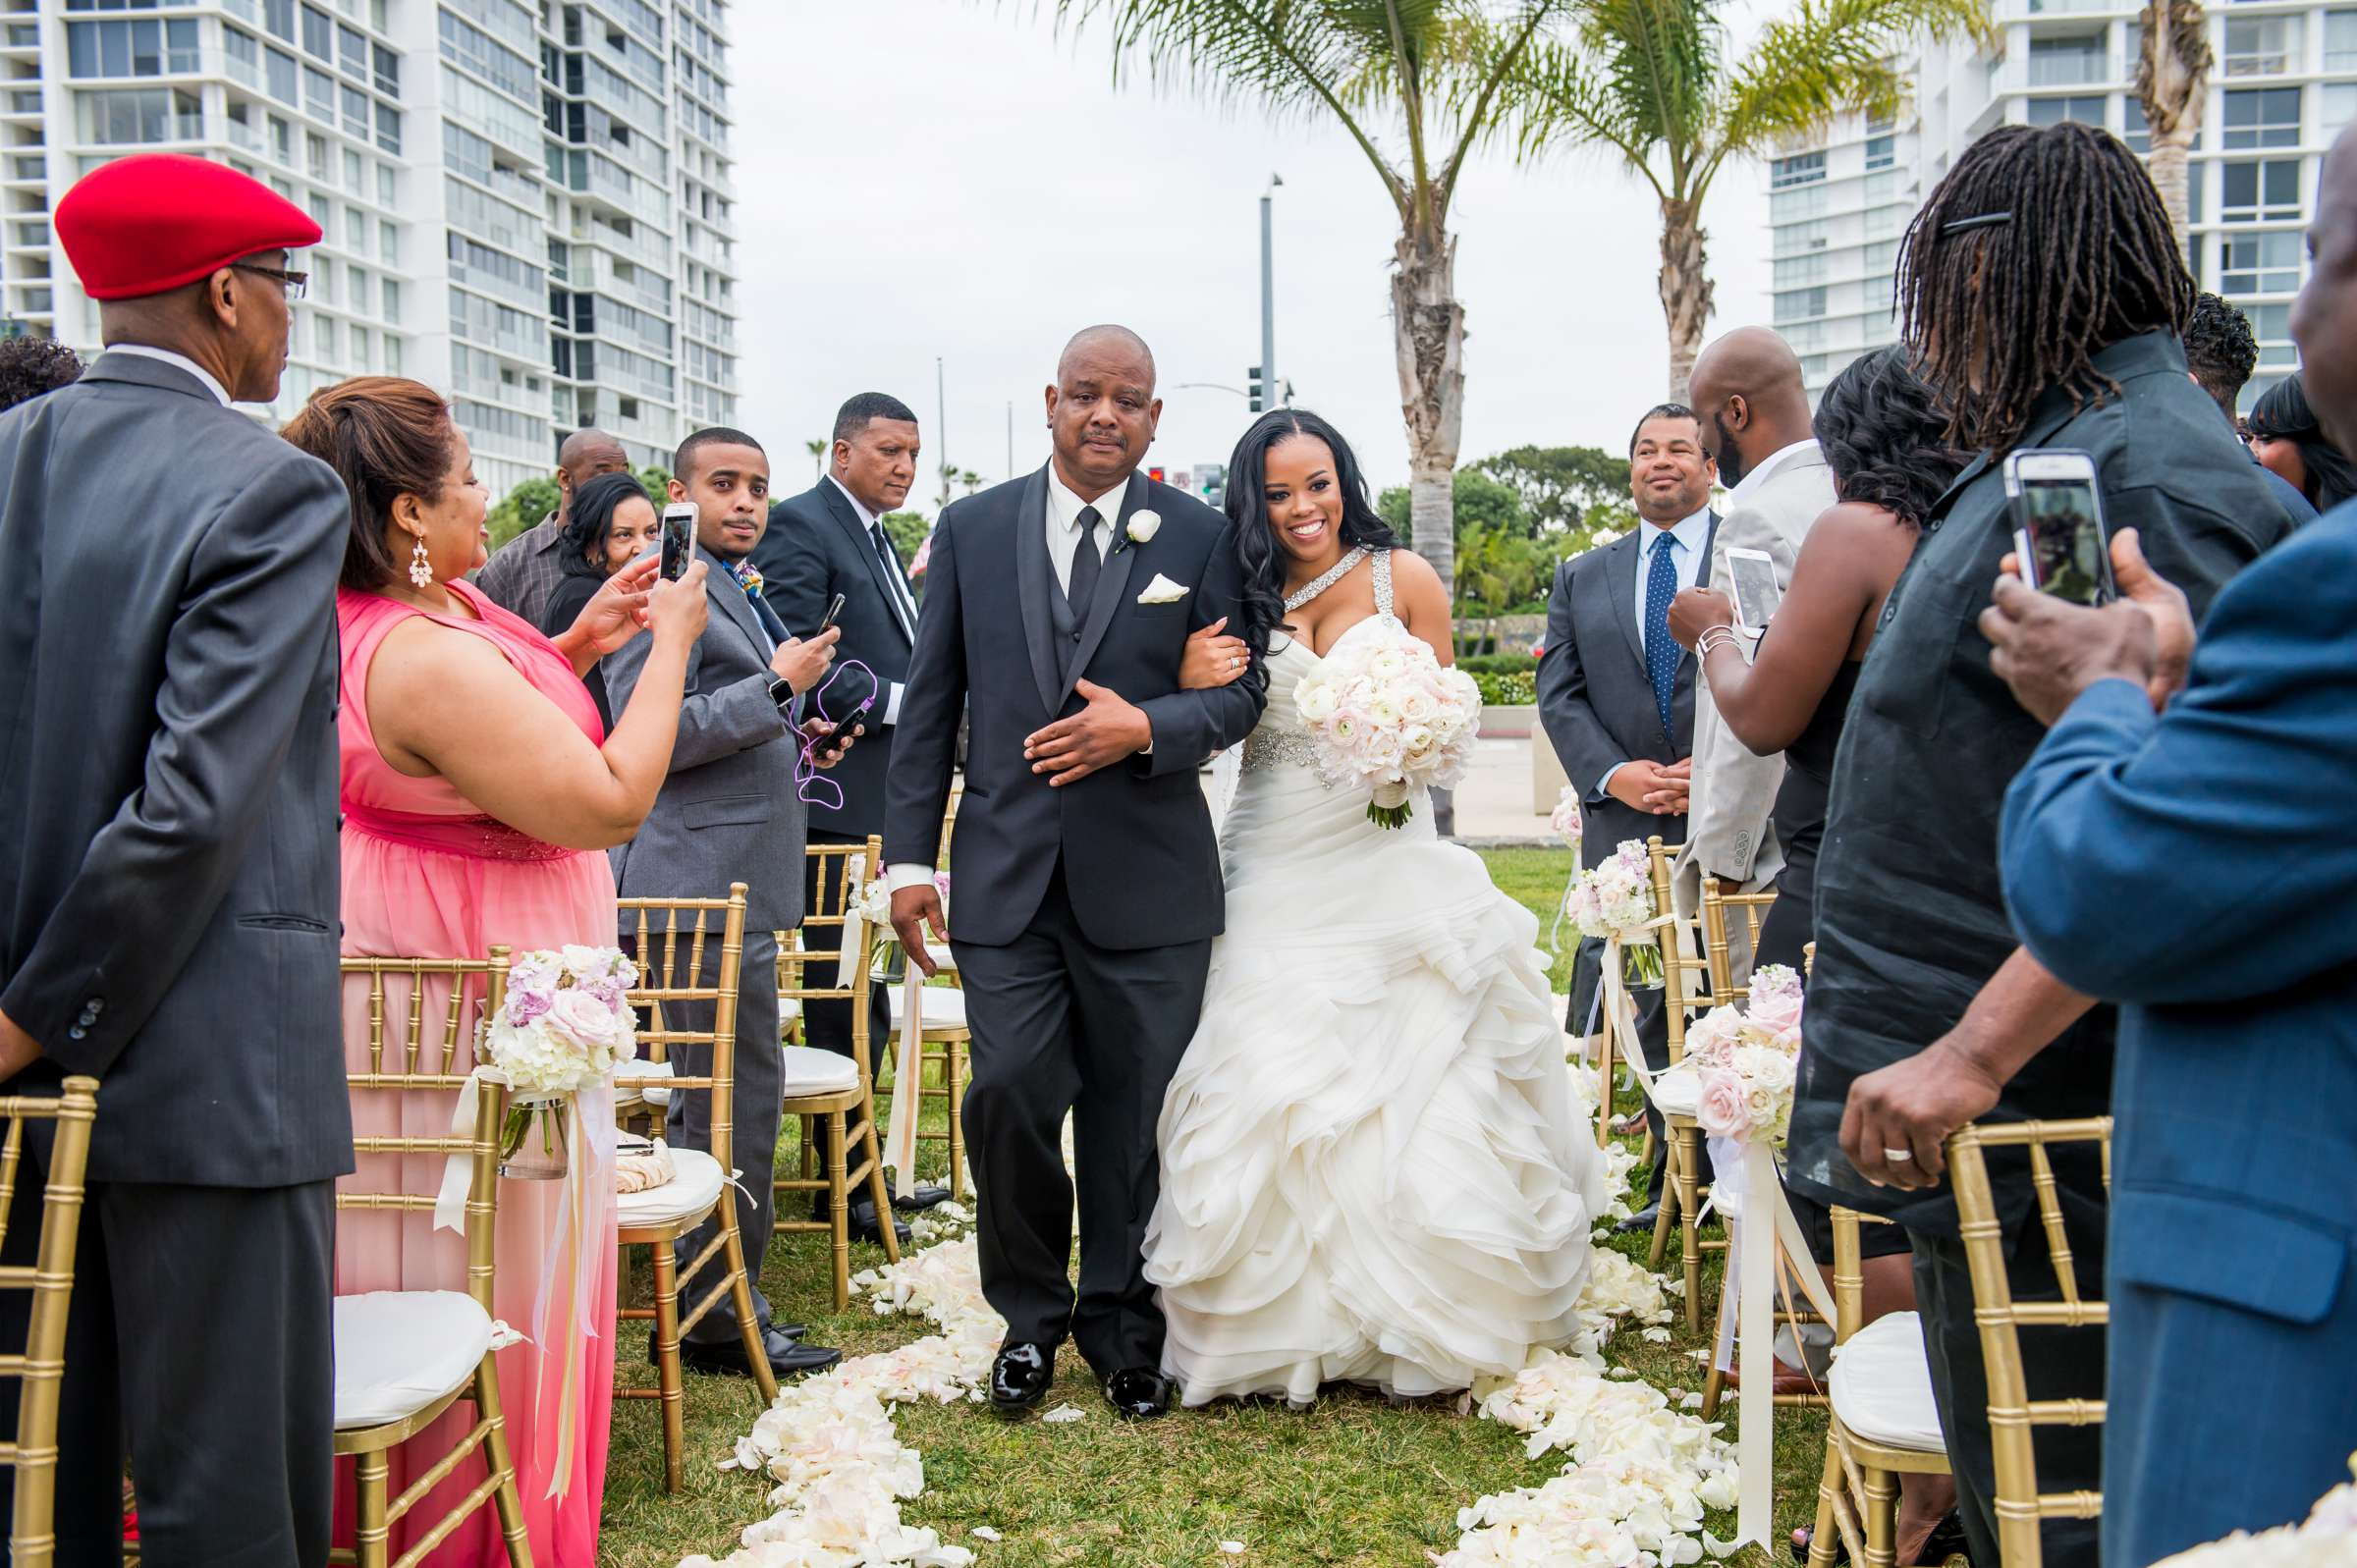 Coronado Community Center Wedding coordinated by First Comes Love Weddings & Events, Nikia and Charles Wedding Photo #48 by True Photography